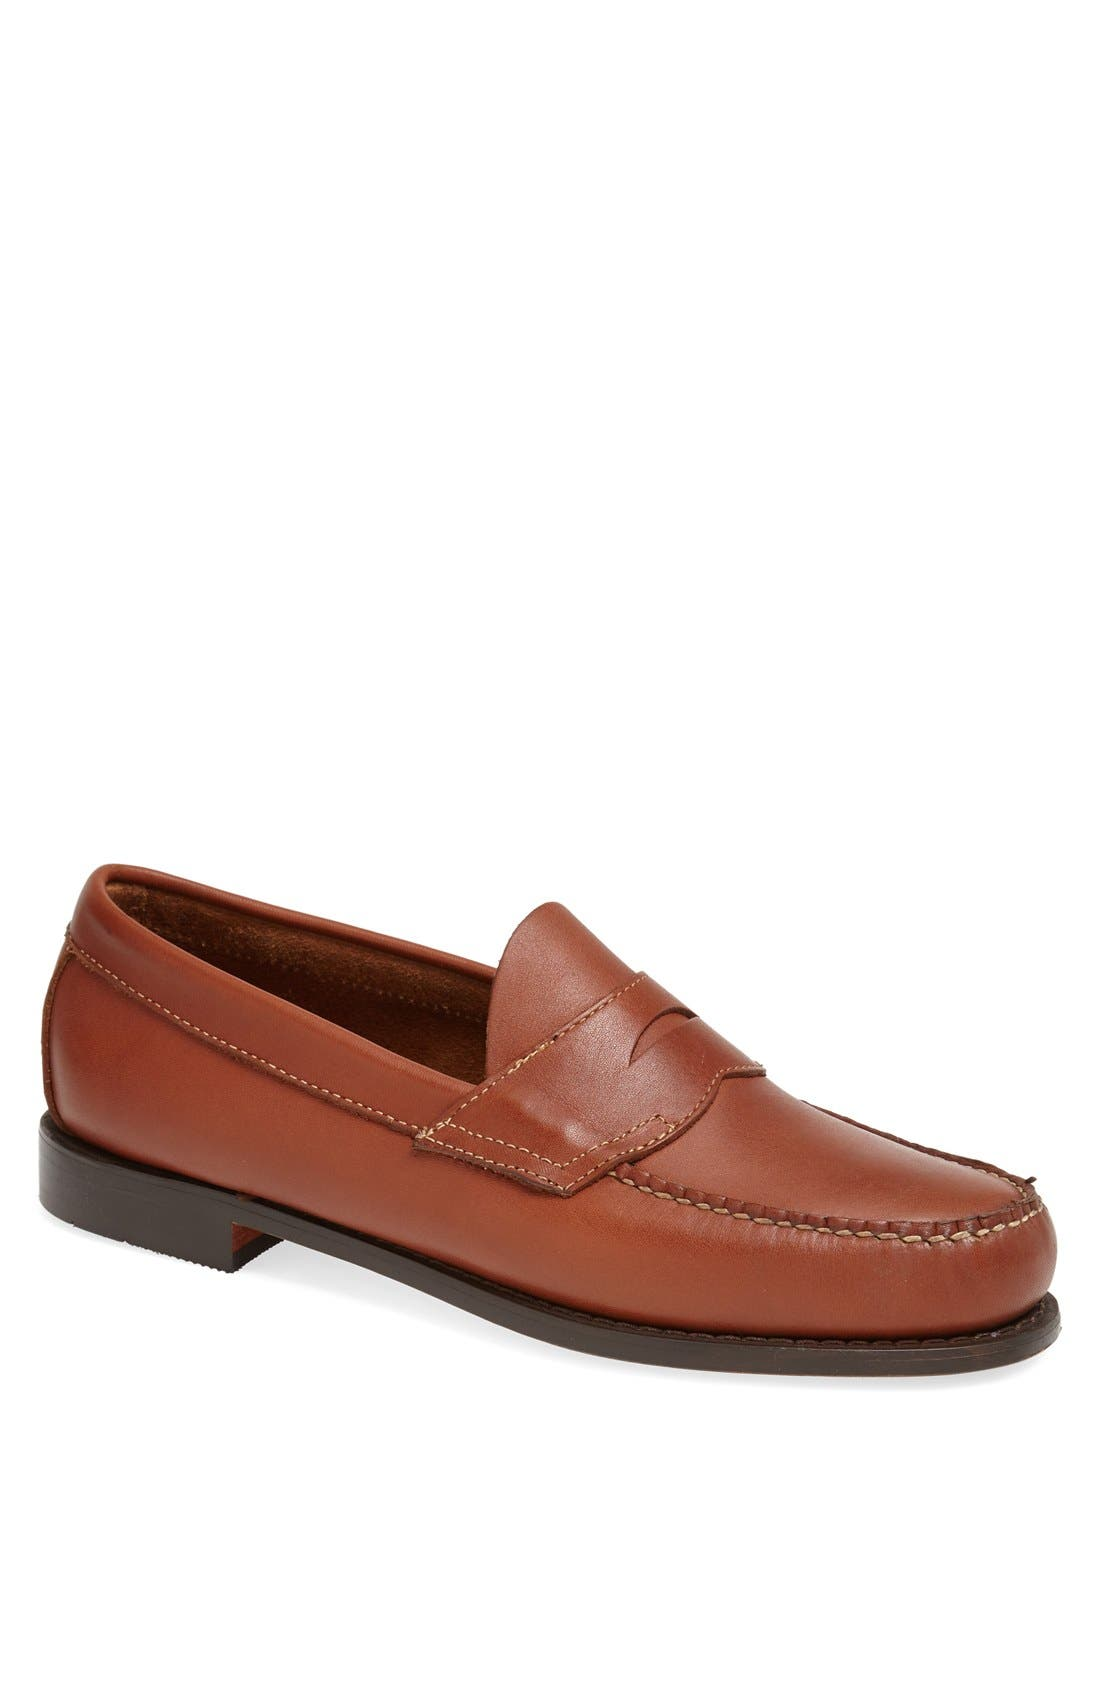 Alternate Image 1 Selected - G.H. Bass & Co. 'Logan' Penny Loafer